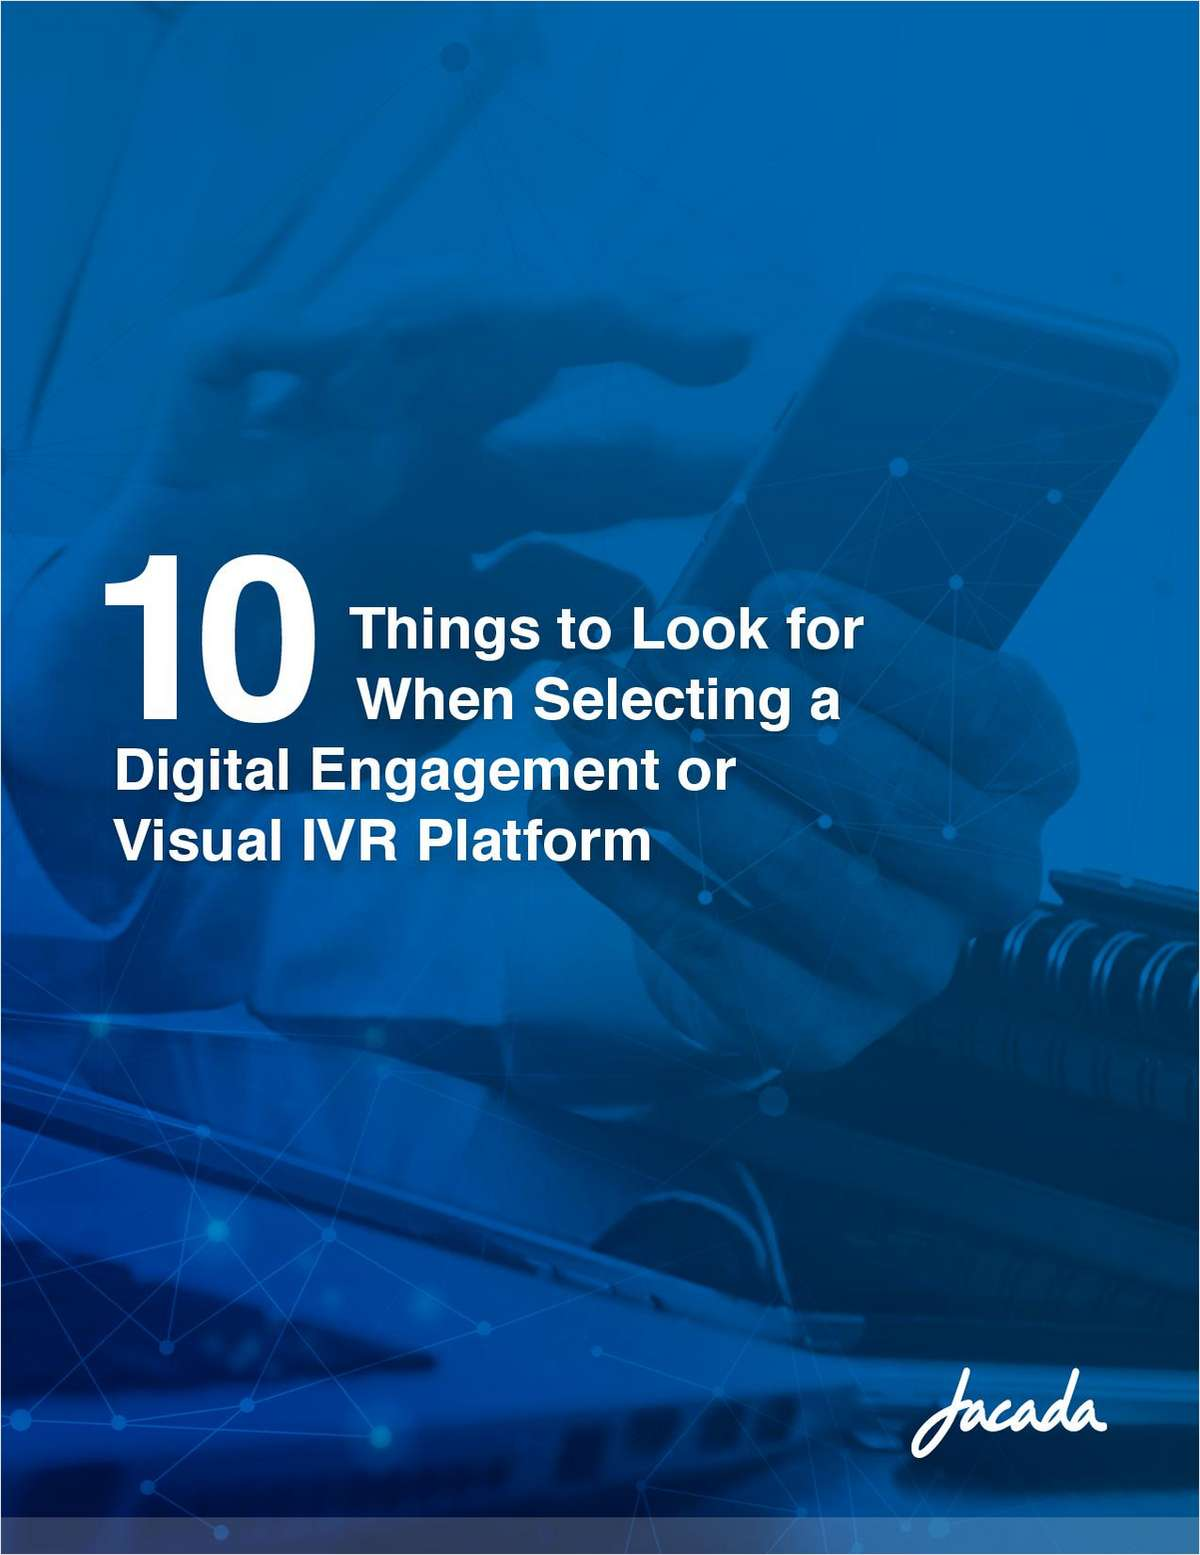 10 Things to Look For When Selecting a Digital Engagement or Visual IVR Platform